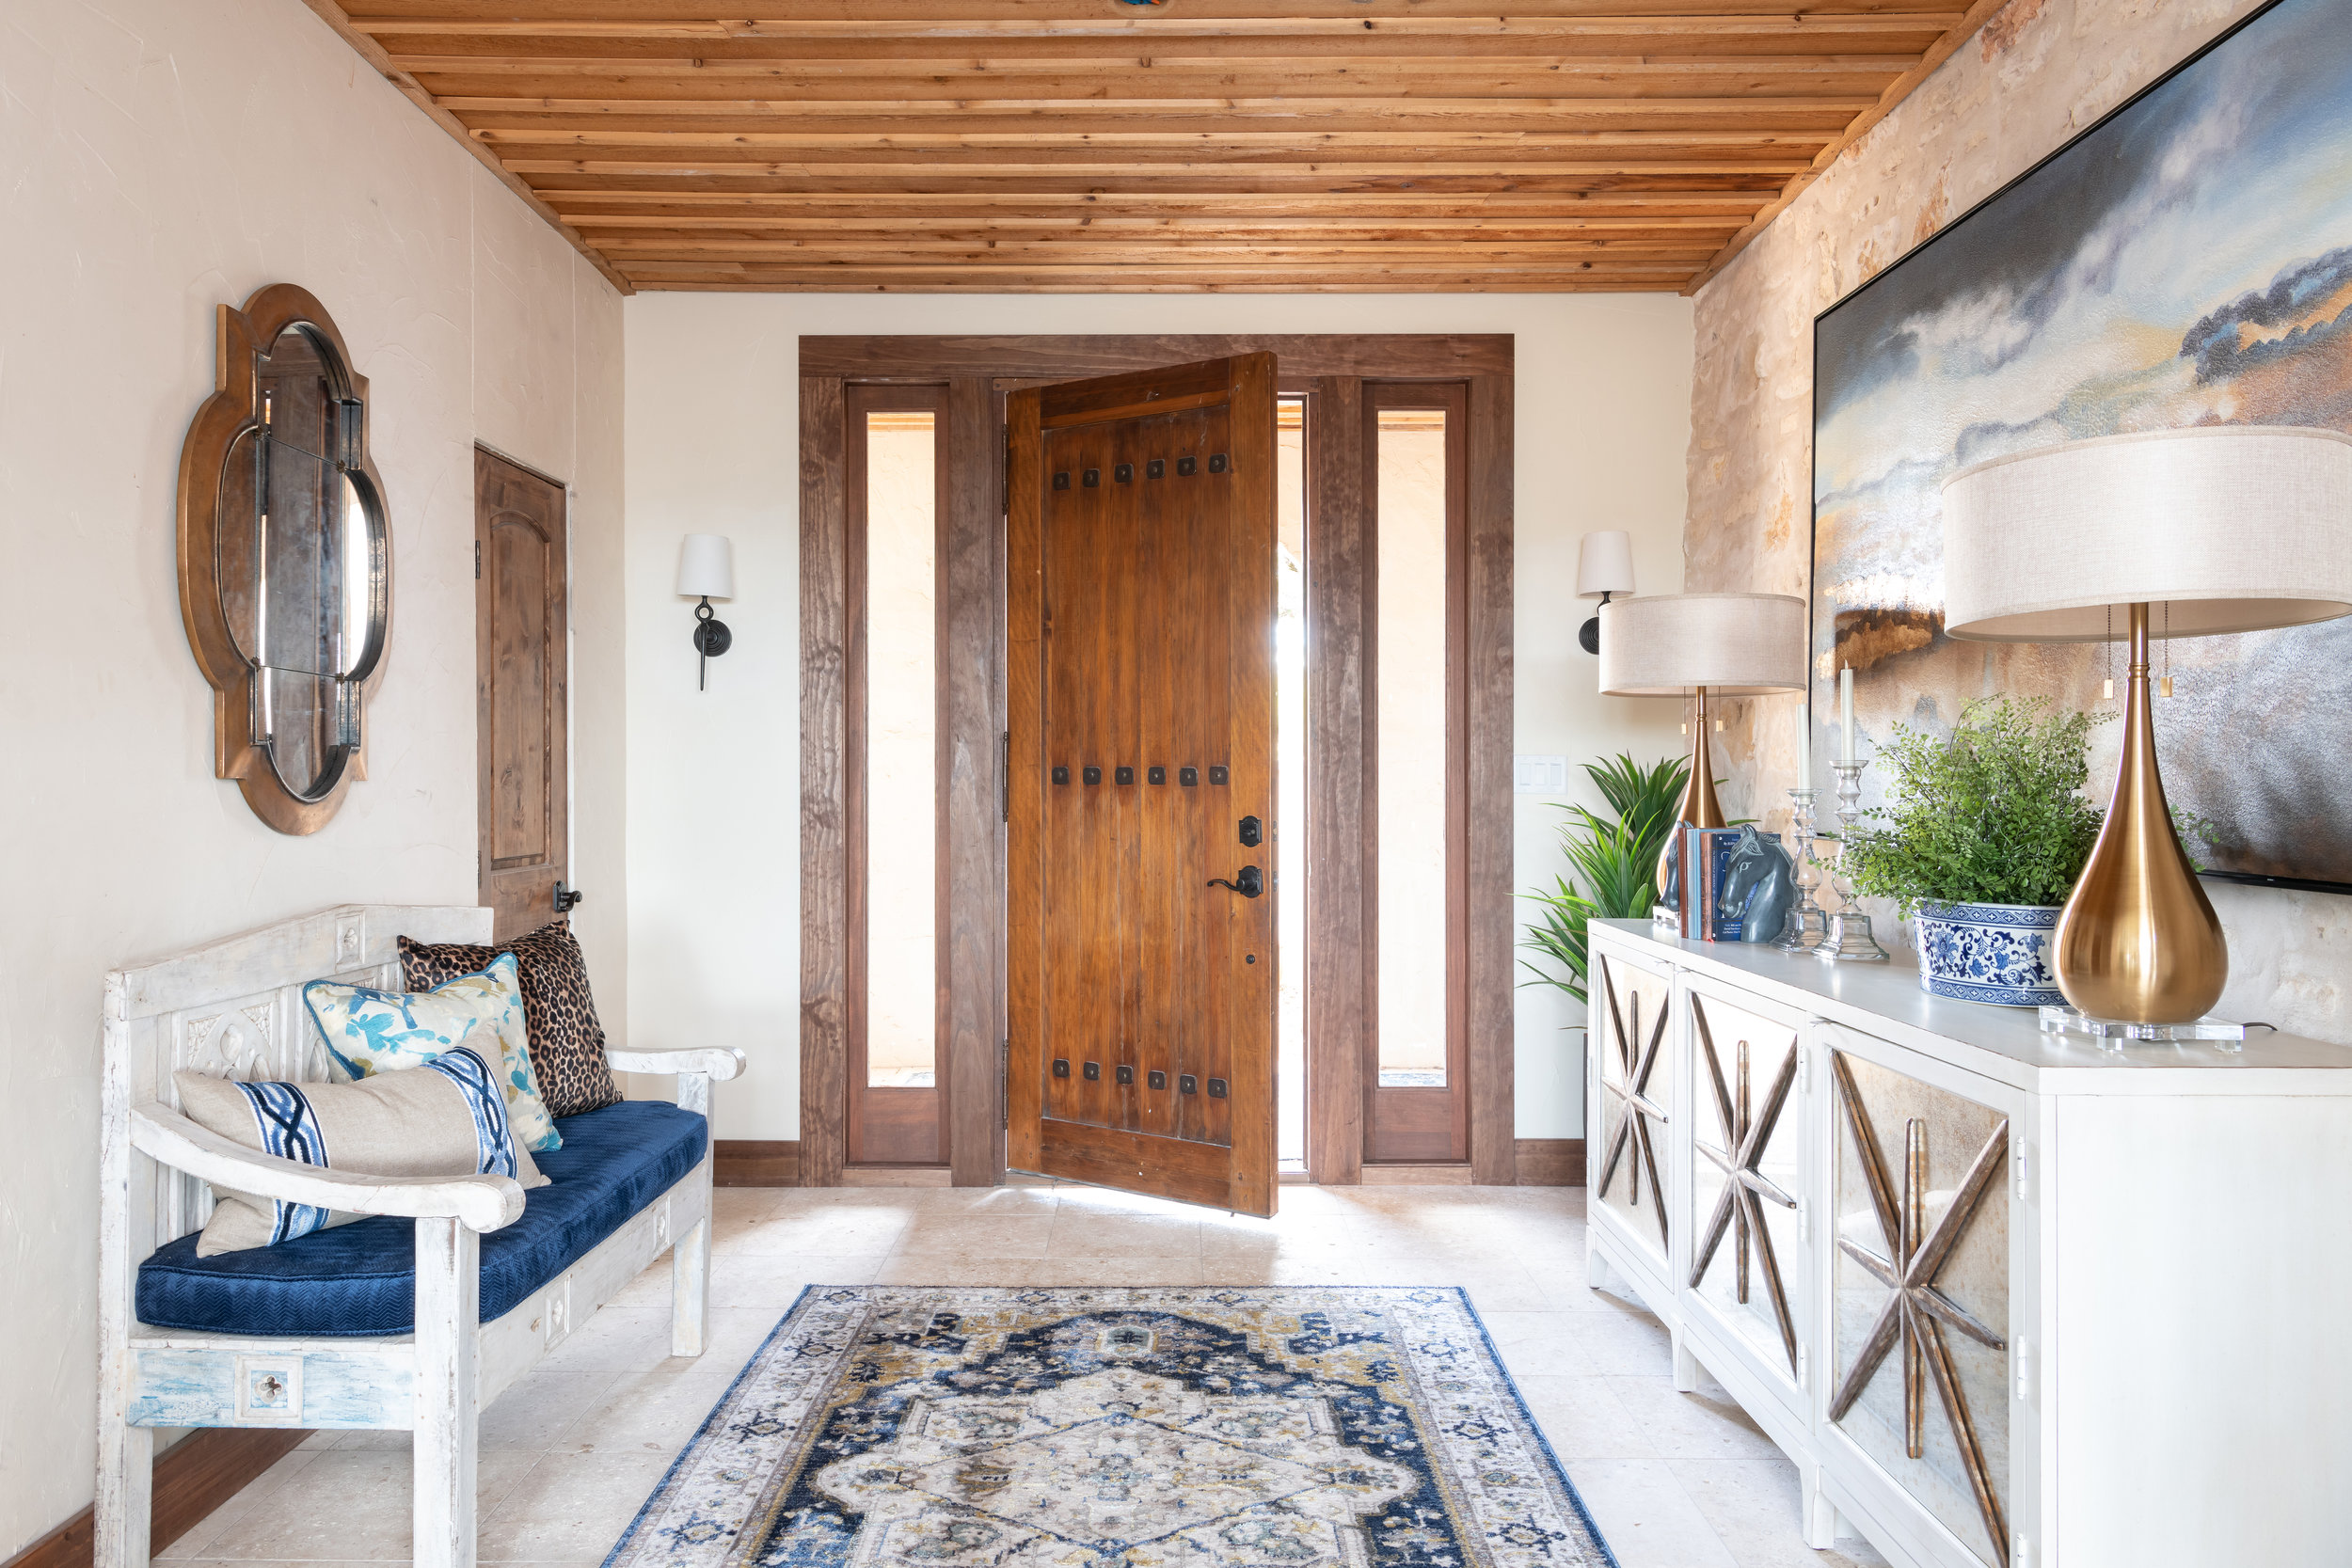 Dripping Springs Transitional Chateau -